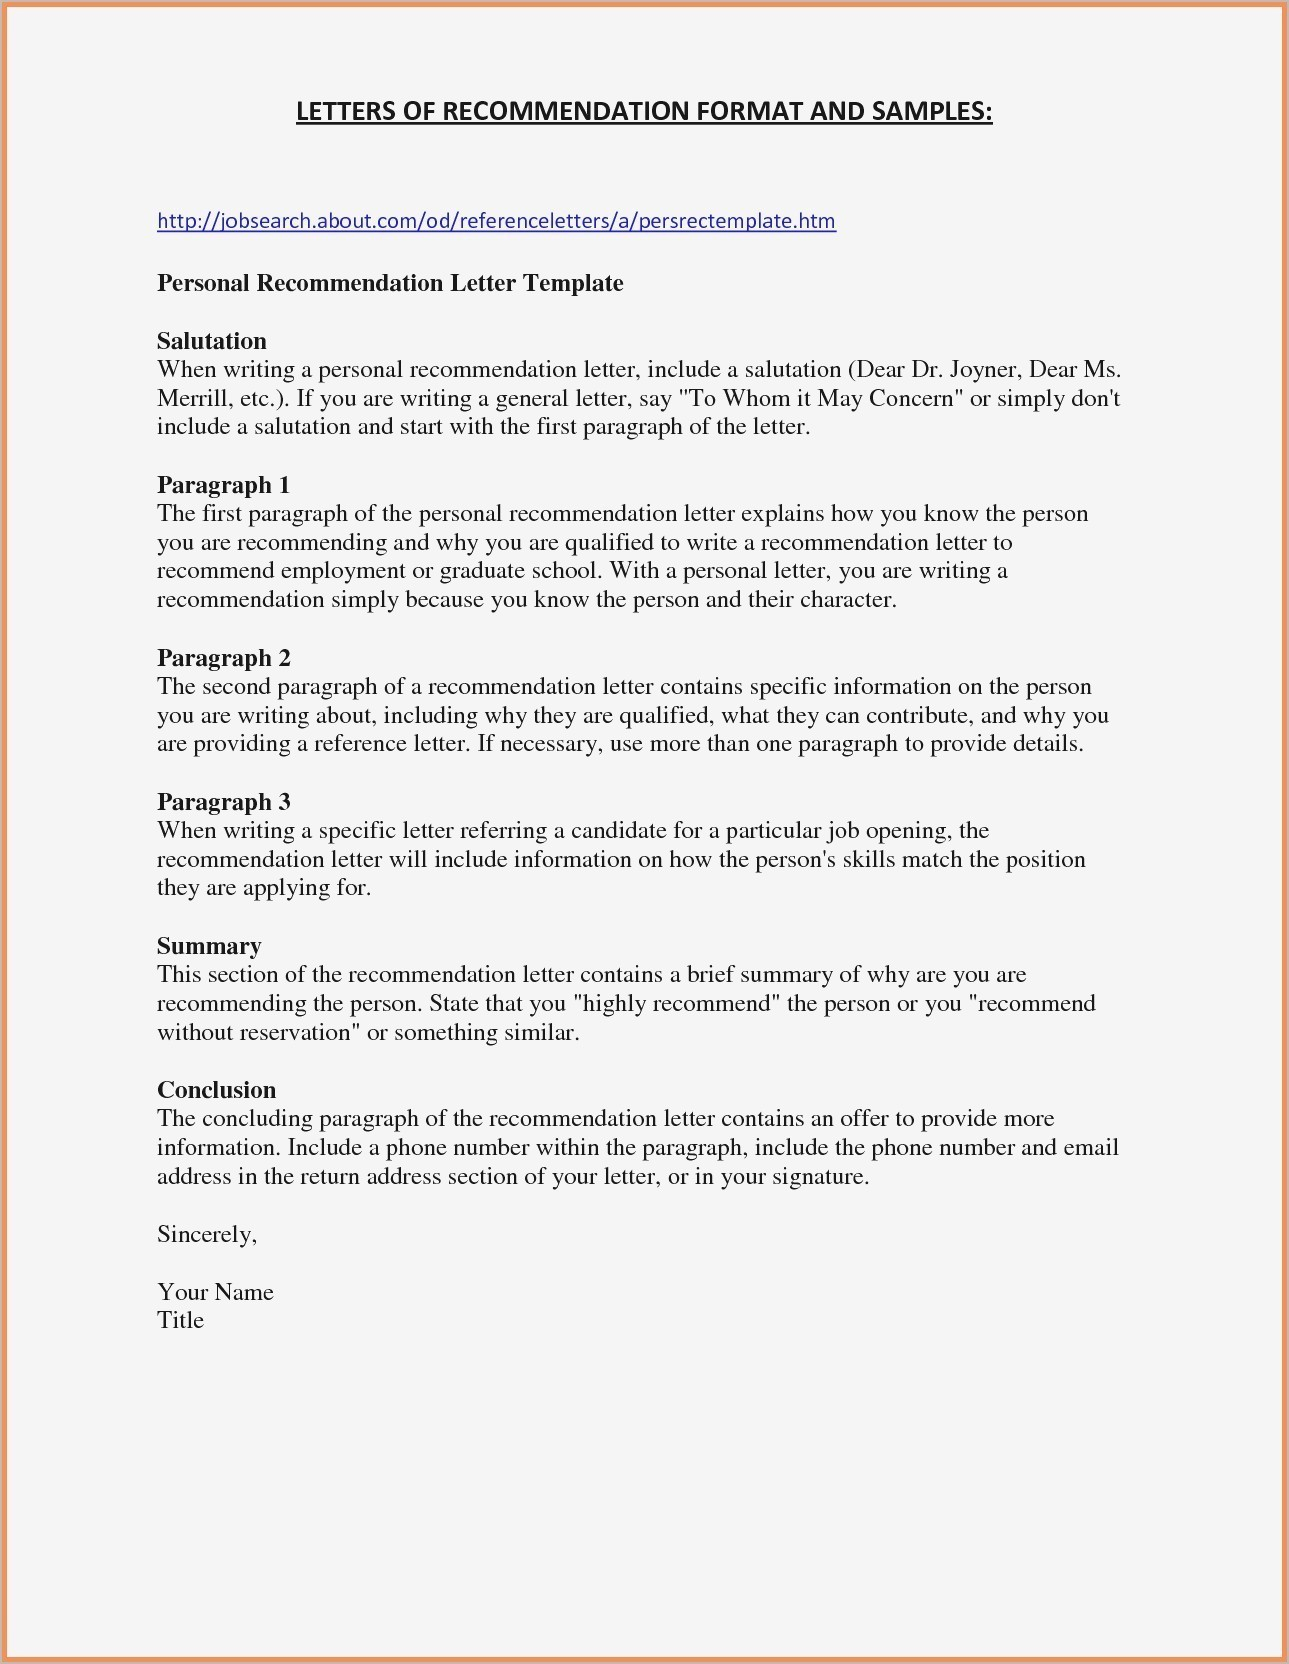 Reference Letter format Template - Job Re Mendation Letter Samples Valid Sample Job Re Mendation